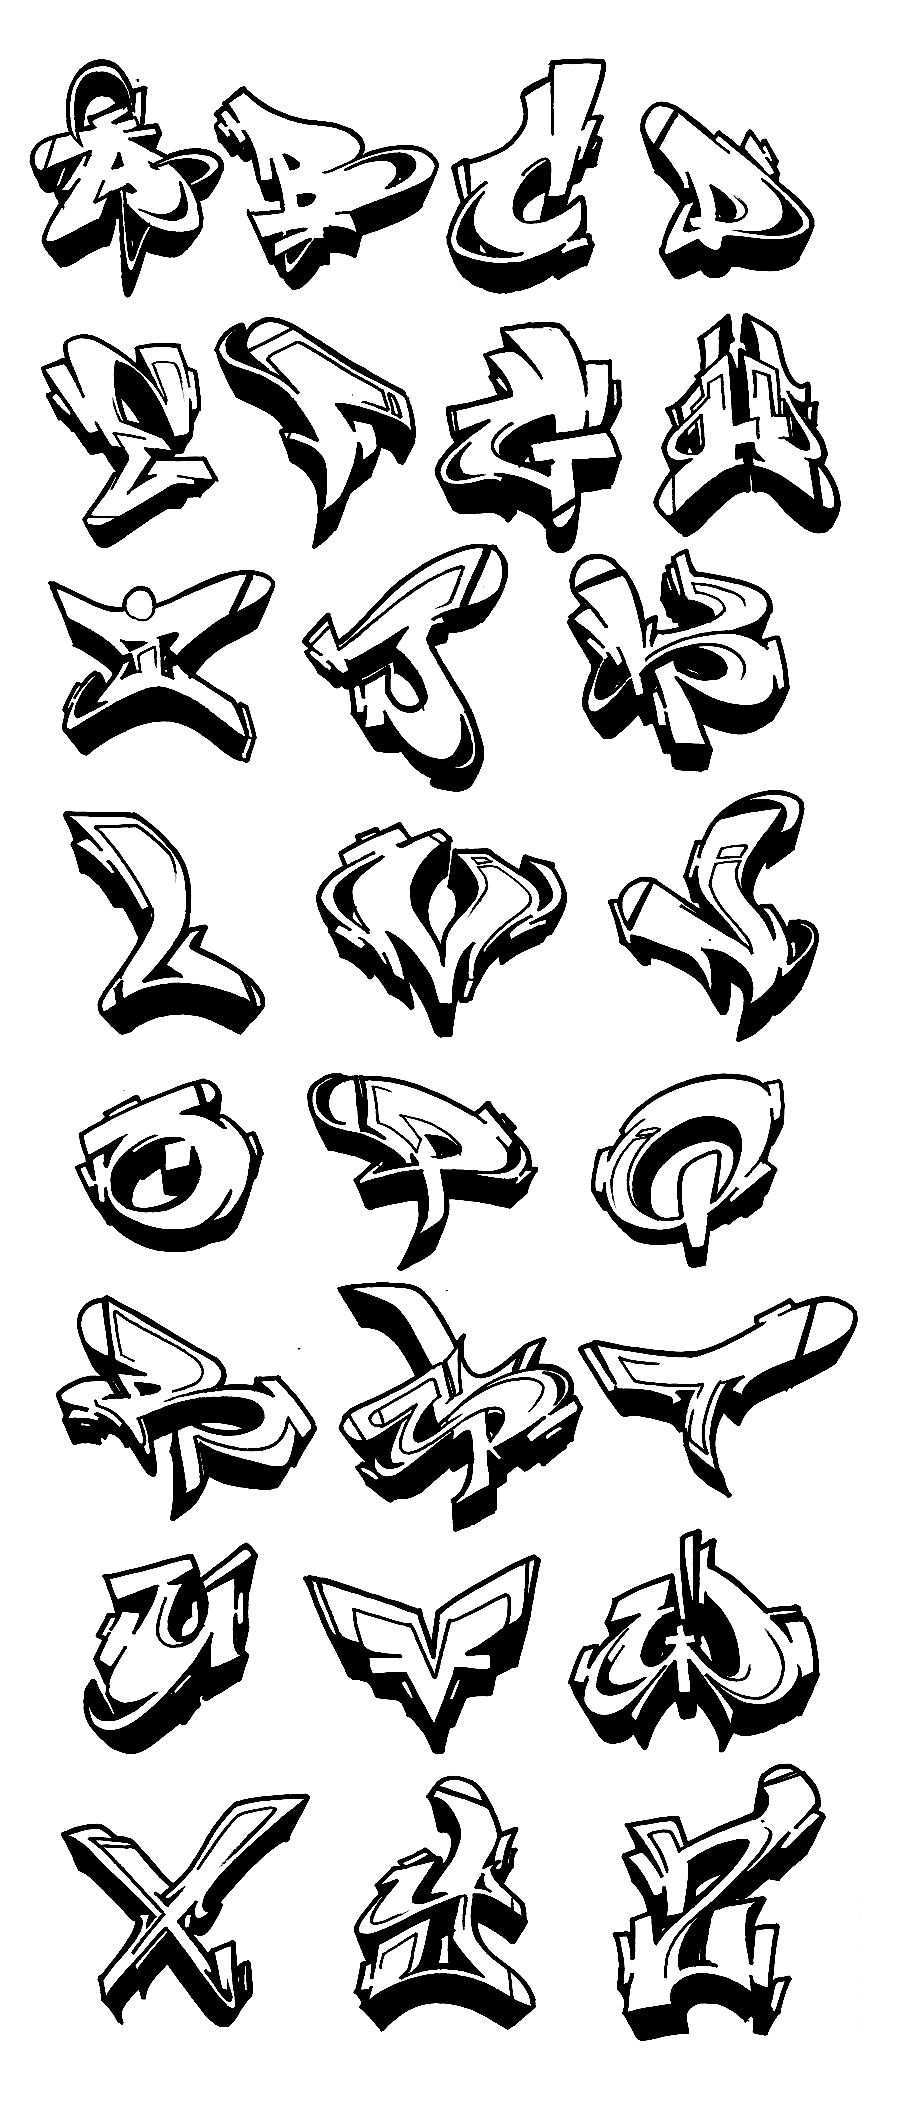 Hand Drawn Set Of Abc Letters Free Hand Alphabet Illustration 3d Doodle Stock Vector Illustration Of Pattern H Fancy Letters Lettering Lettering Alphabet